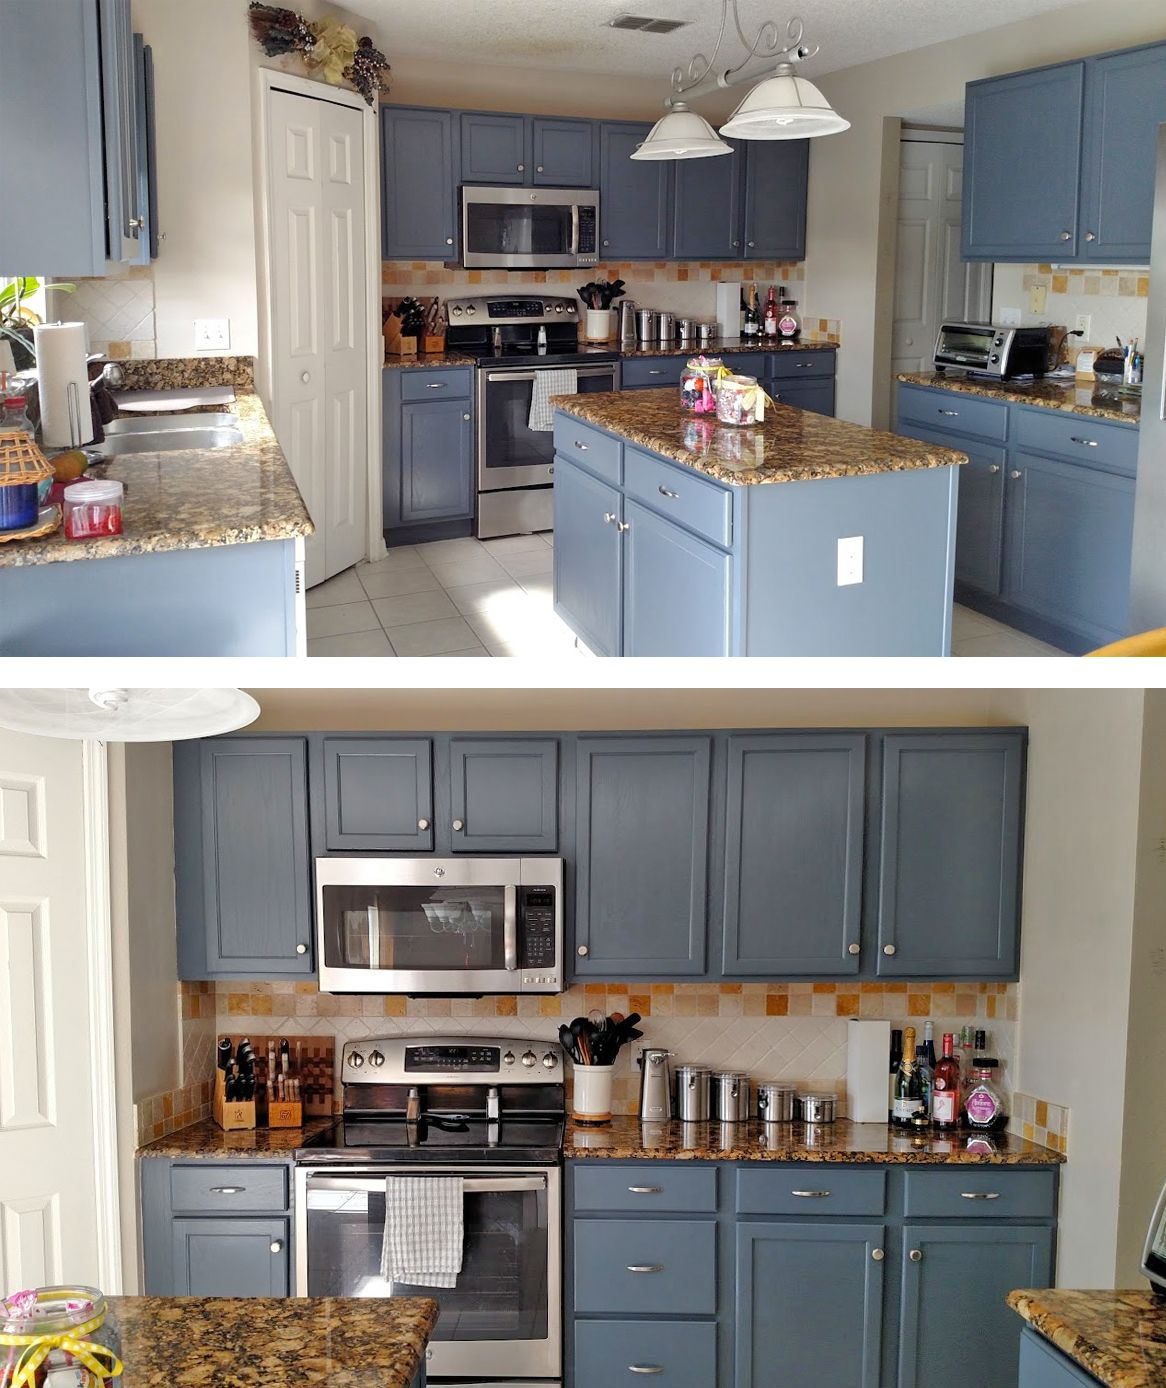 Check Out This Stunning Kitchen Makeover Completed By Donnalyn Ginther  Using GFu0027s Gray Gel Stain!